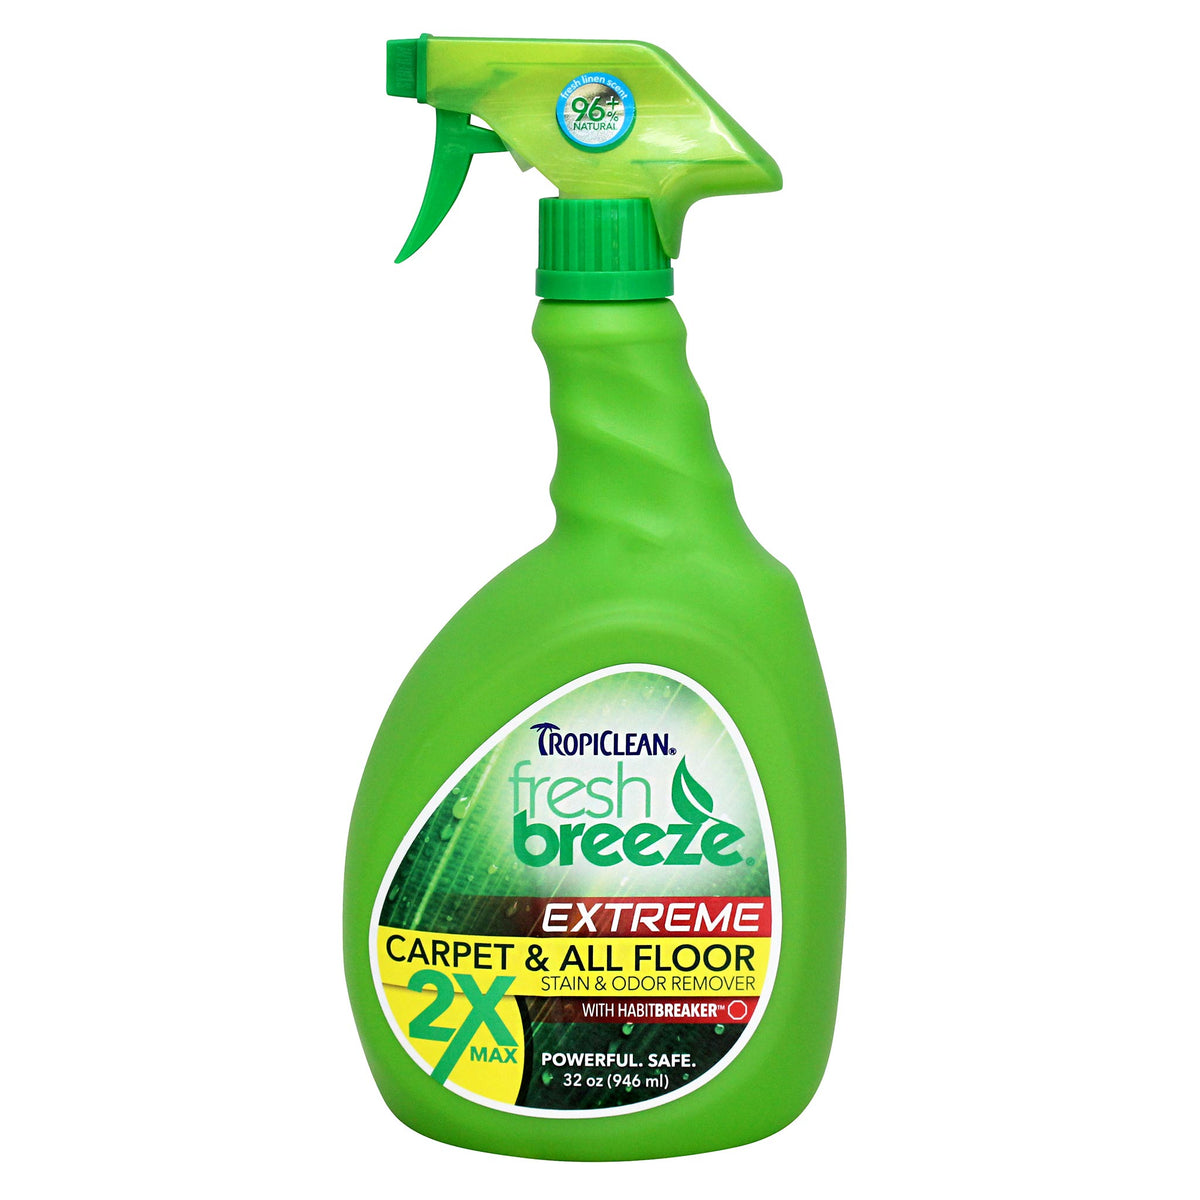 Tropiclean Extreme Carpet & All Floors Stain & Odour Remover